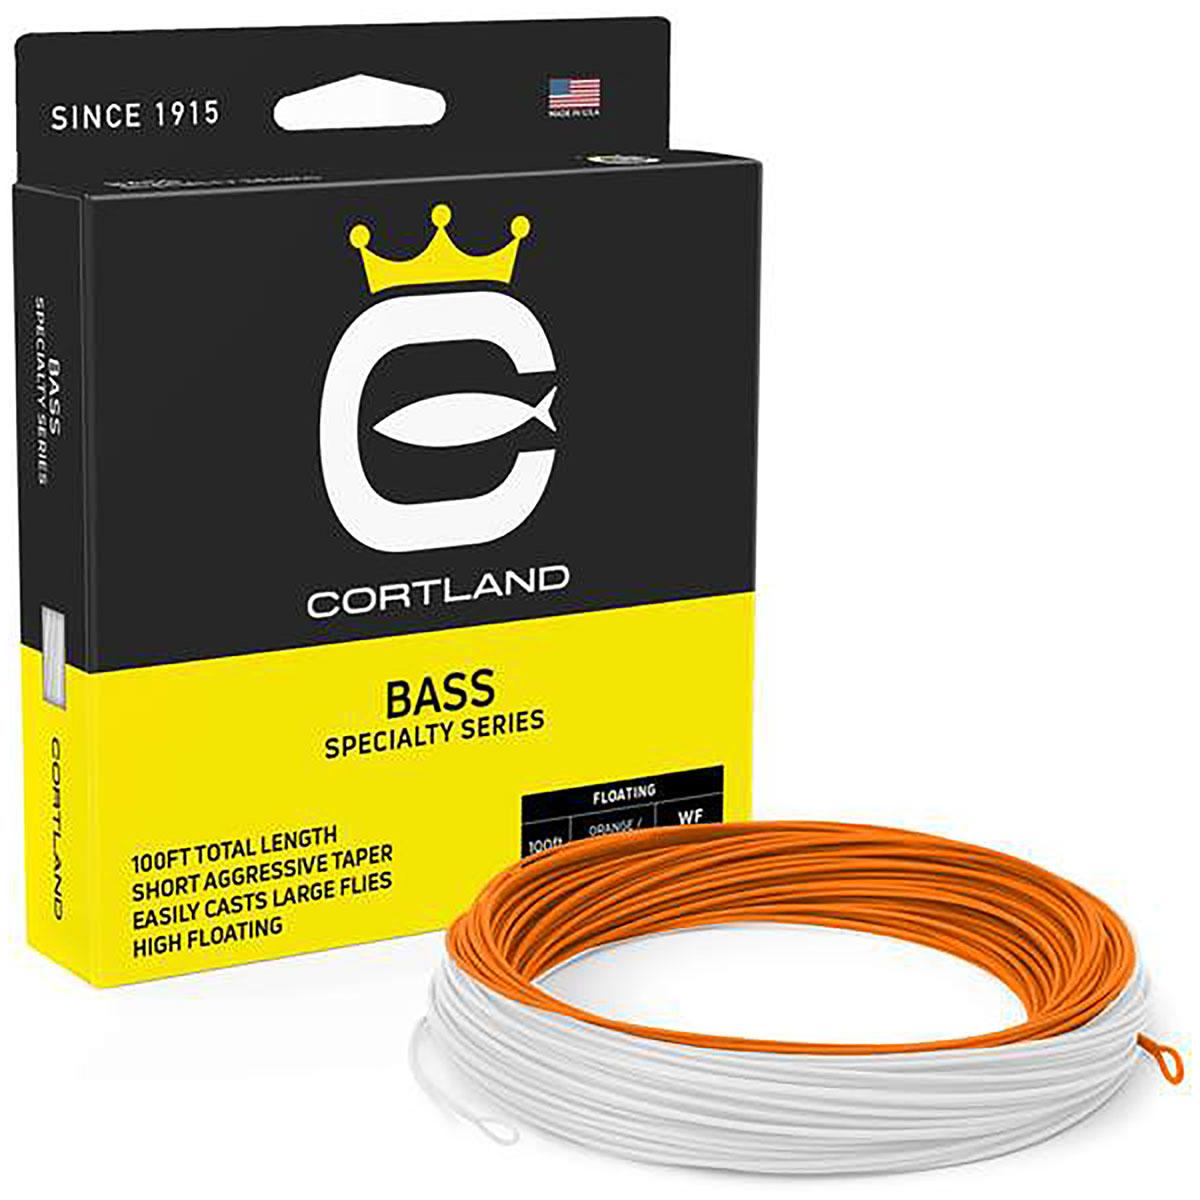 Cortland Specialty Bass Taper Fly Line